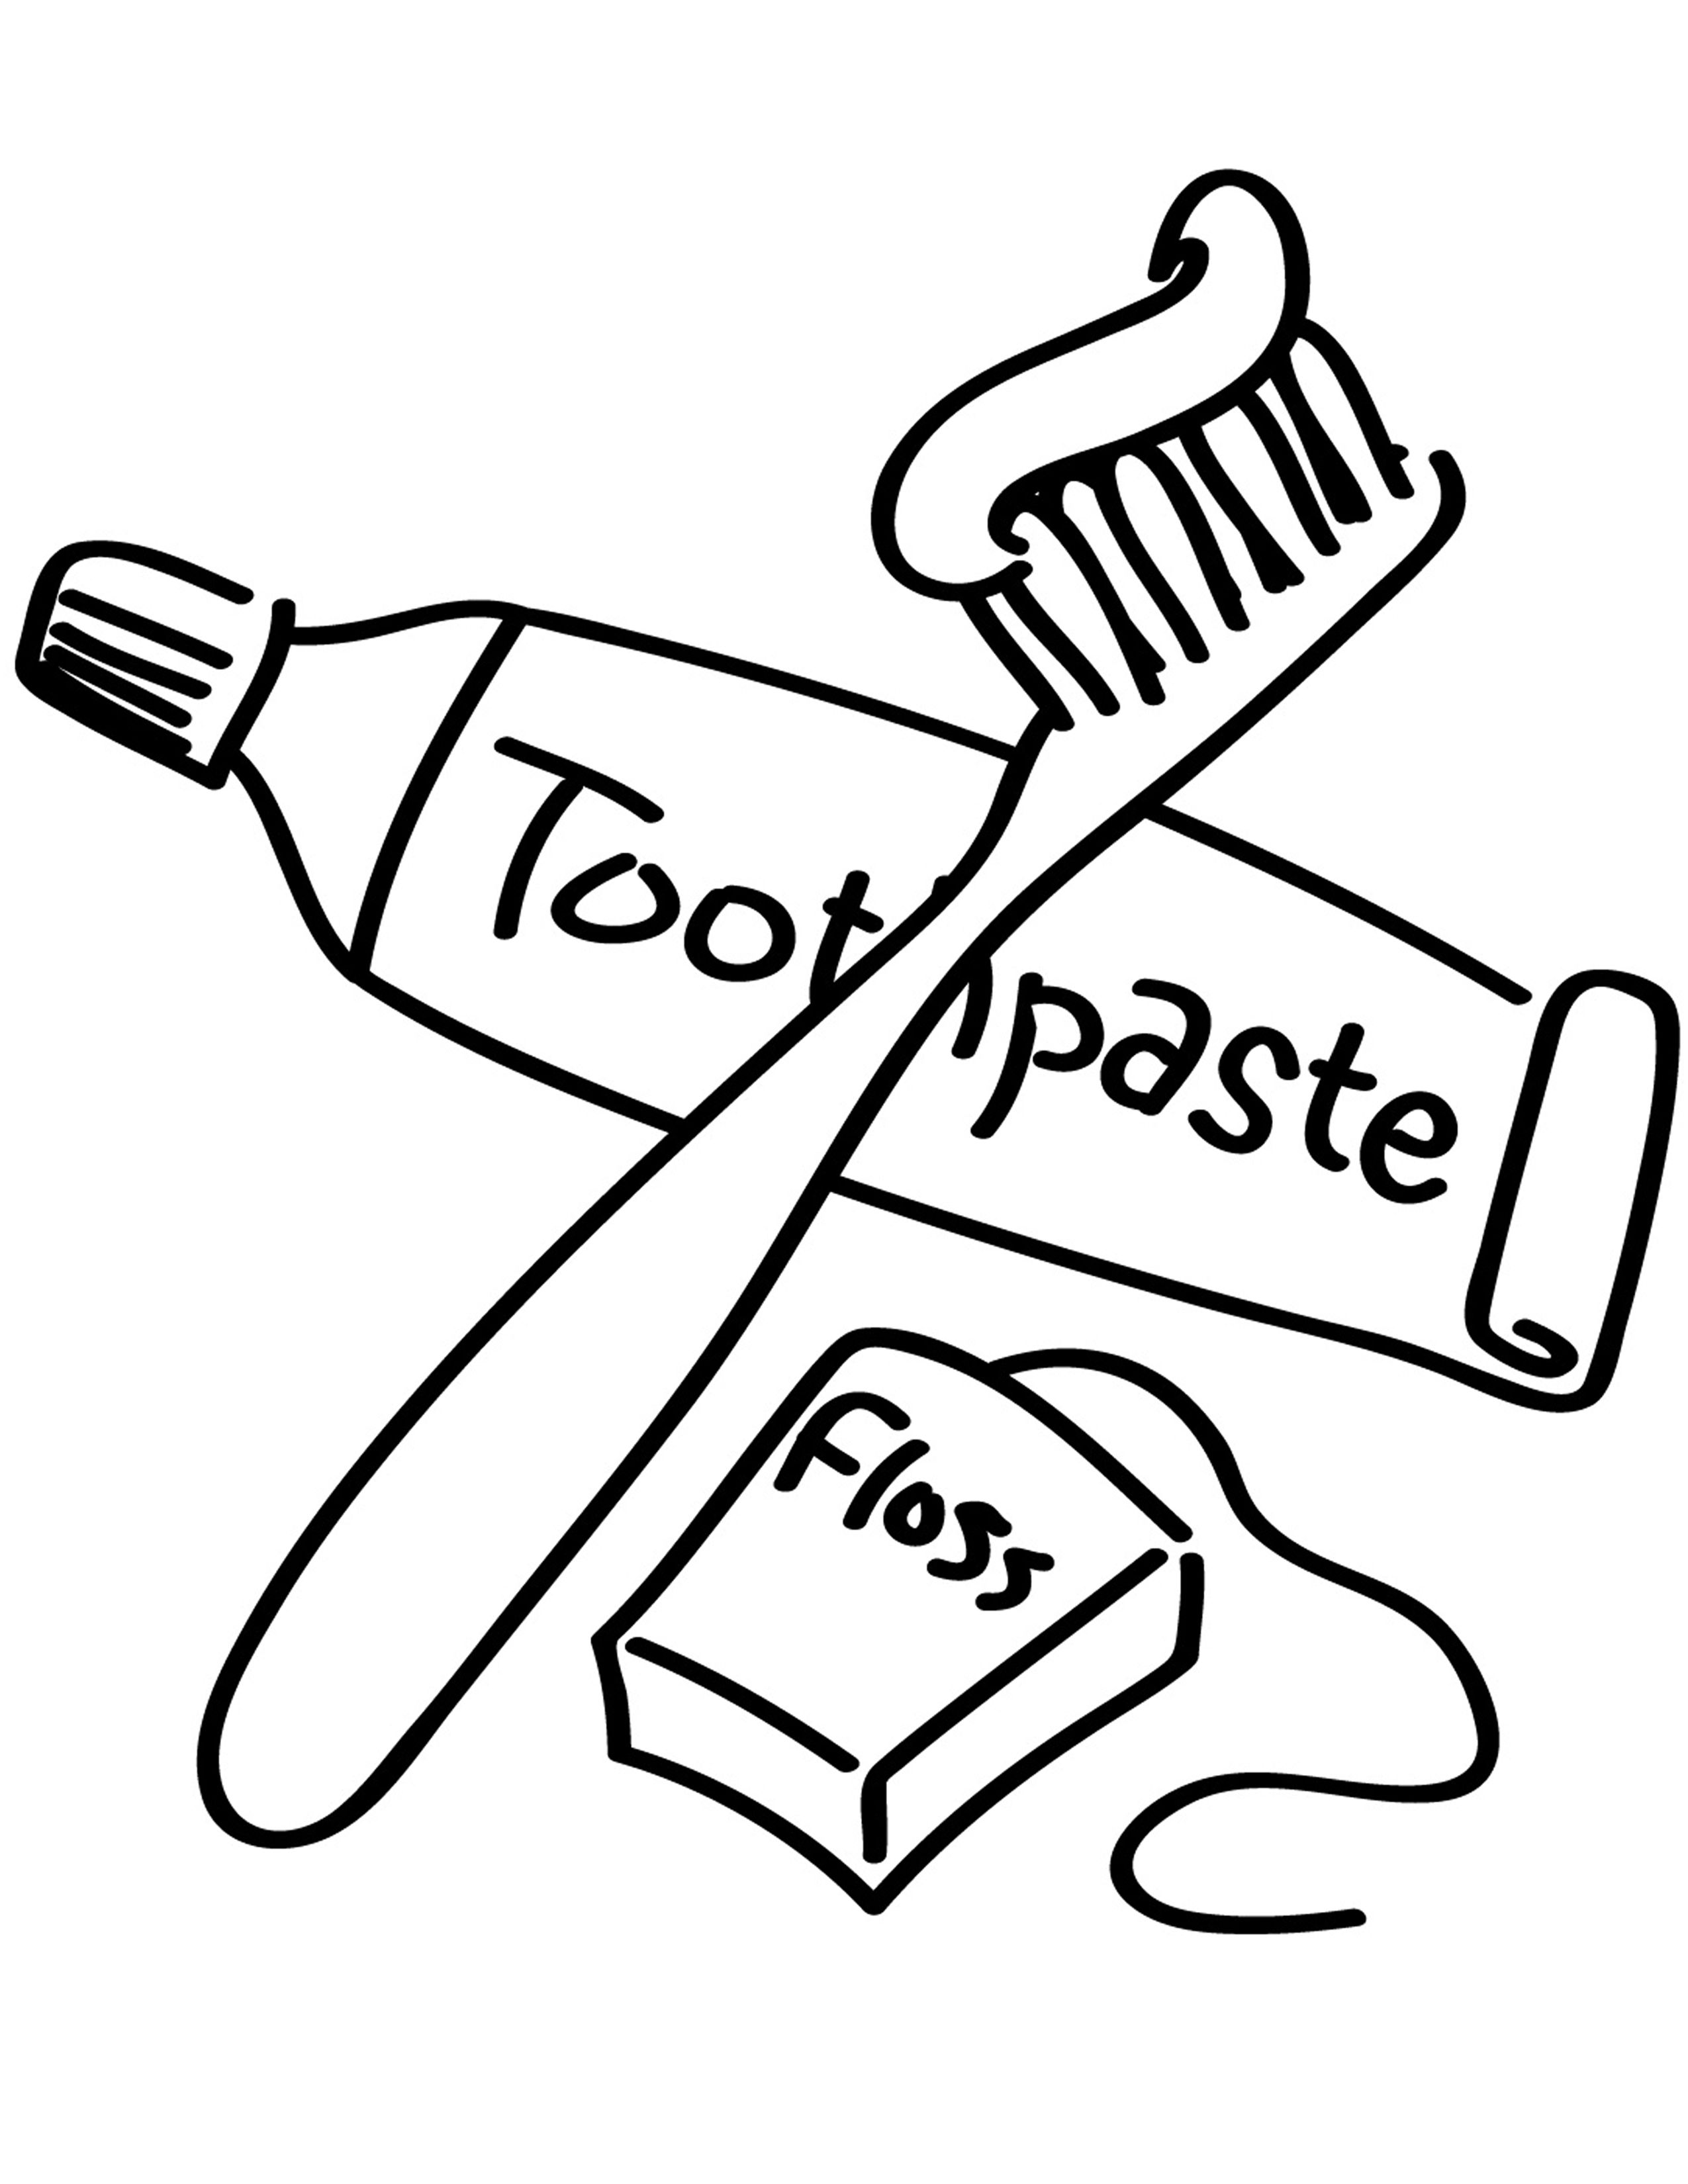 13+ Brushing teeth clipart black and white information